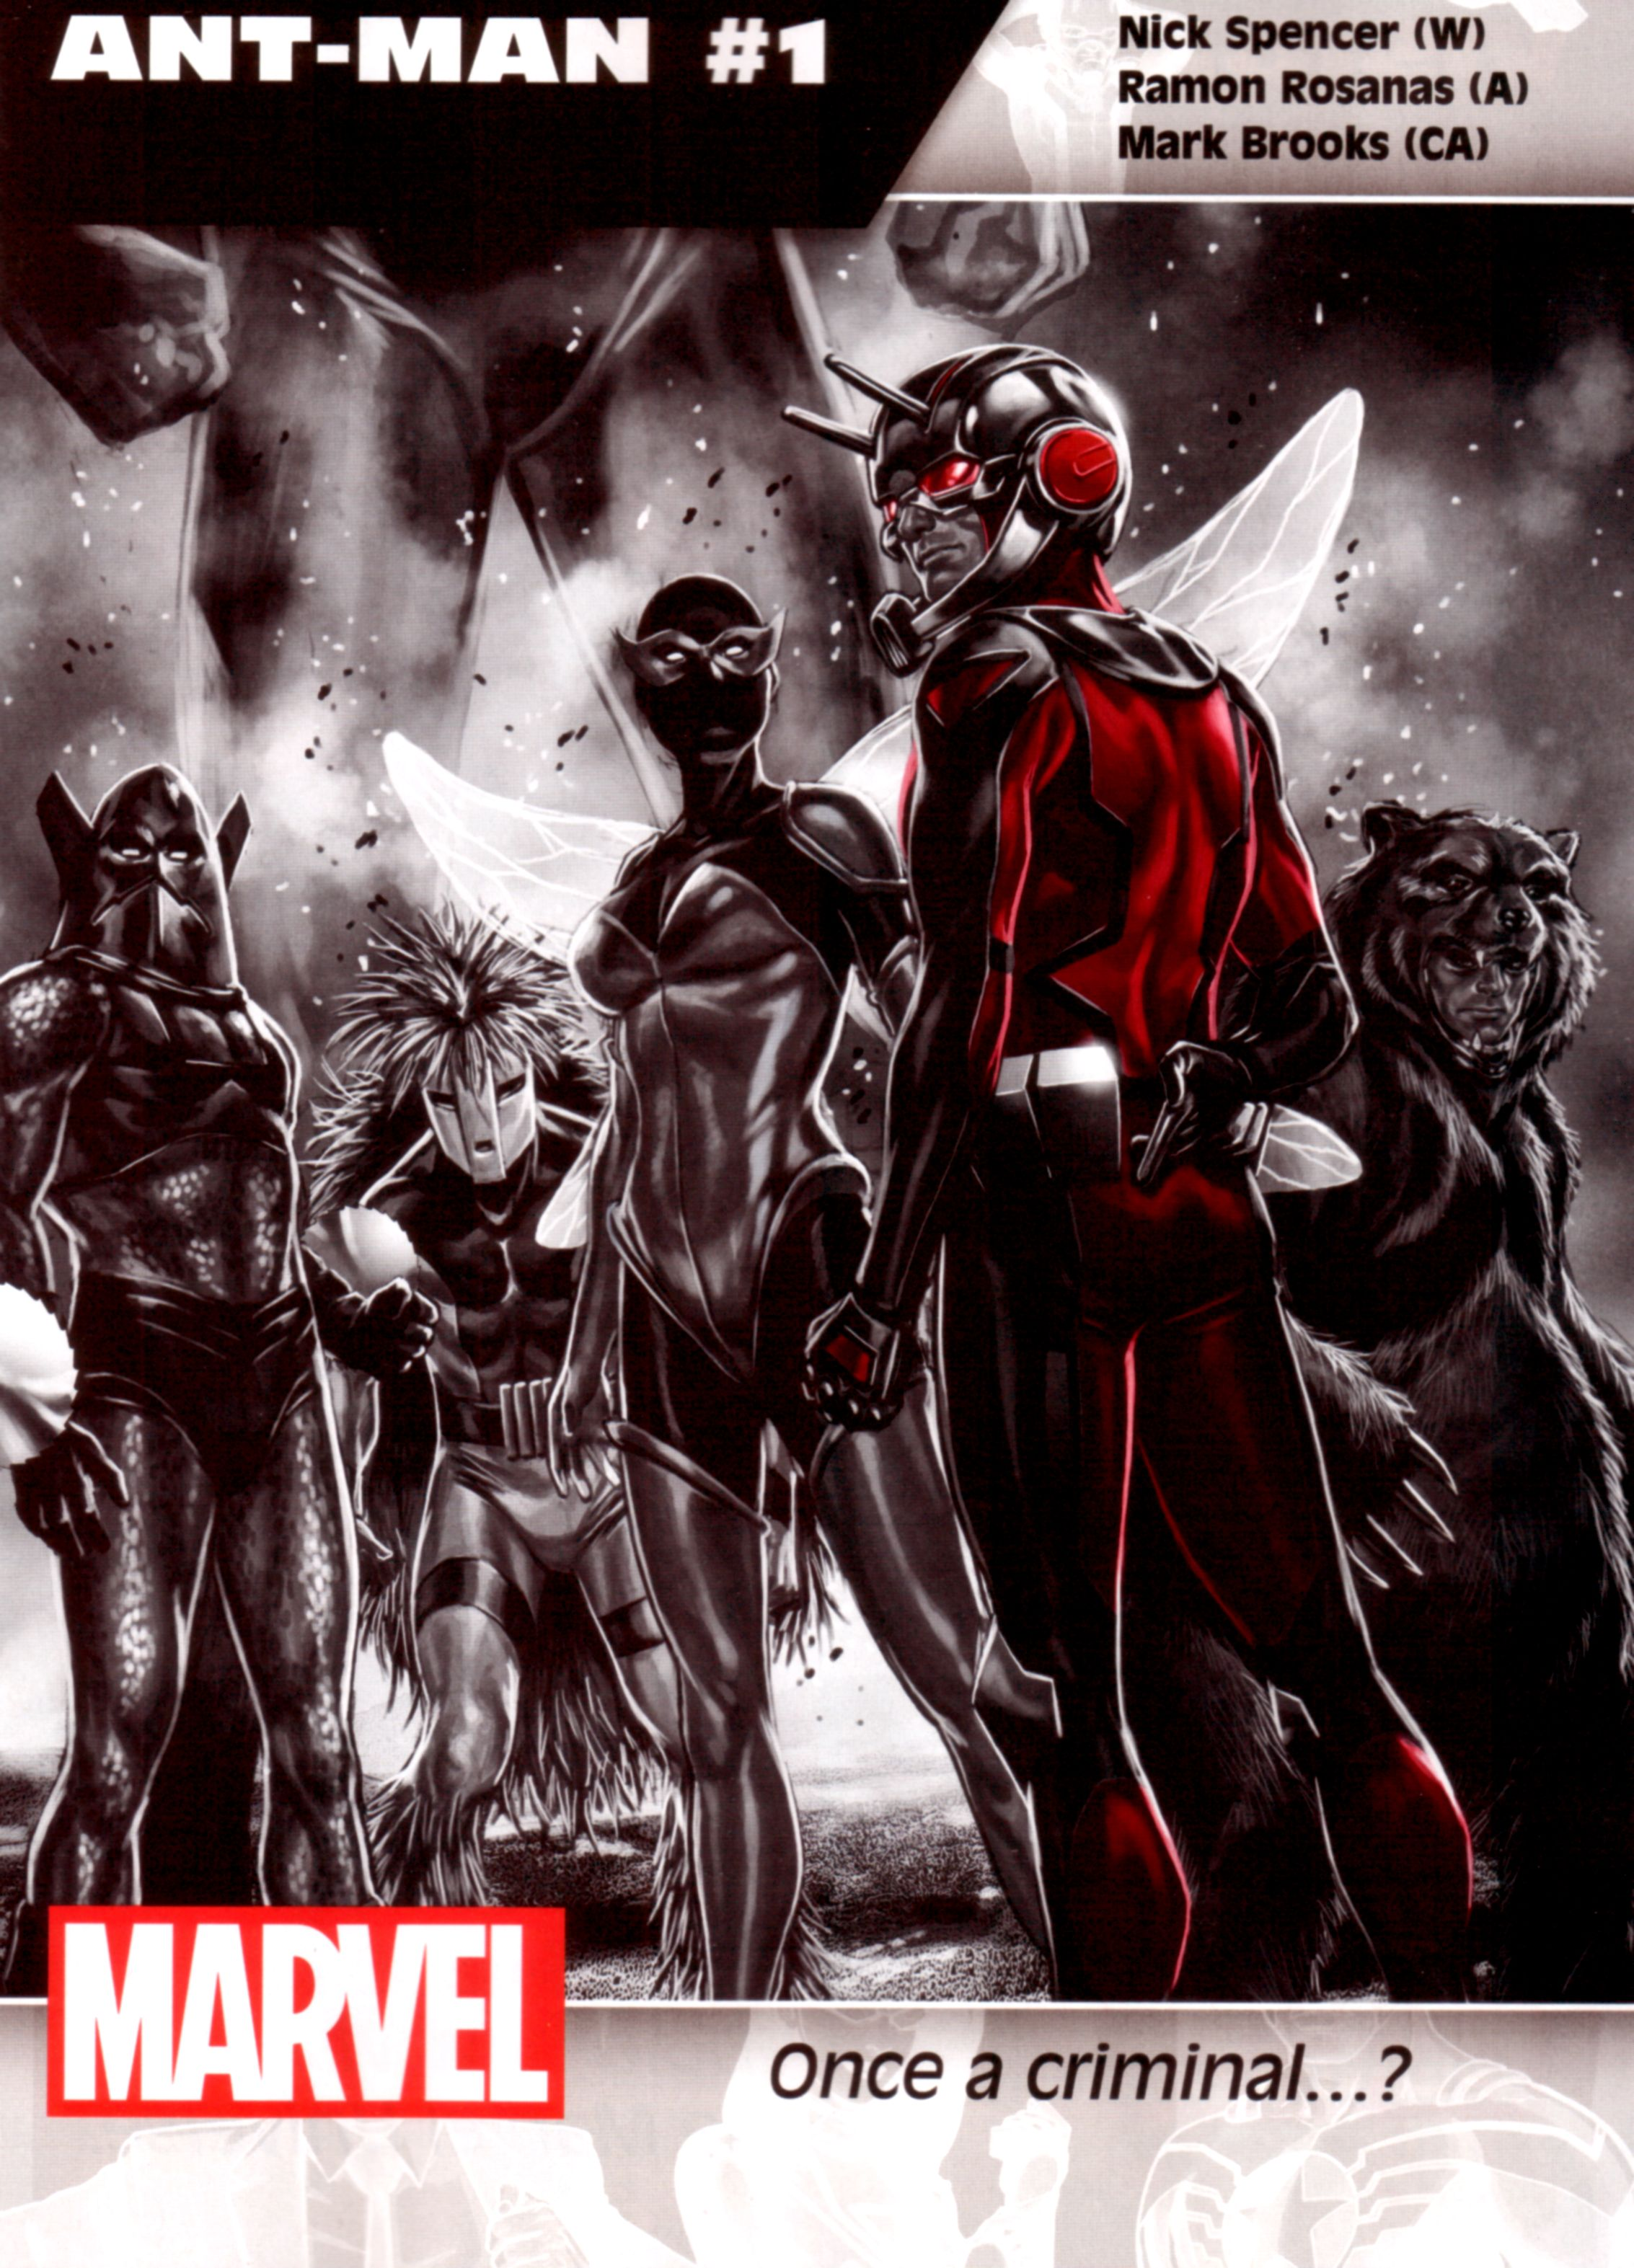 All New All Different Avengers Vol 1 2: More All-New All-Different Marvel Comics Spoilers! 75% Of